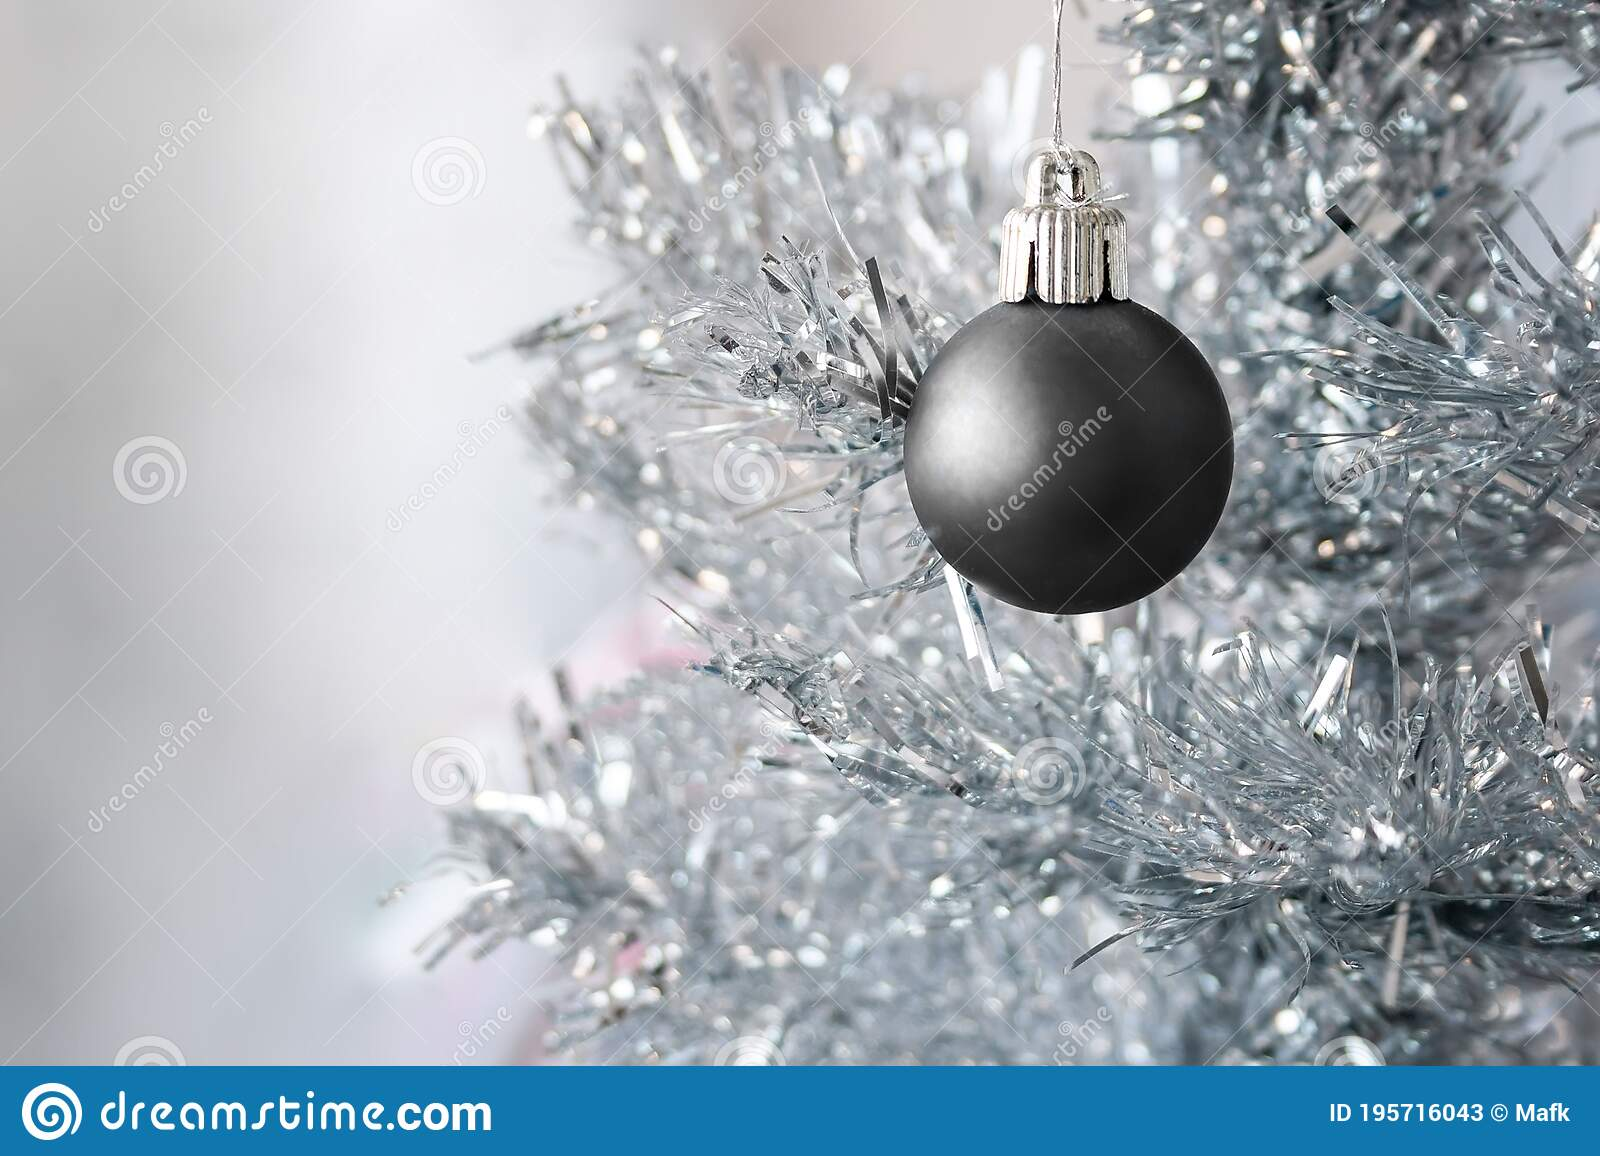 Black Matte Metallic Ball Hanging On A Silver Artificial Christmas Tree With Copy Space Selective Focus Blurred Background Stock Image Image Of Matte Decoration 195716043